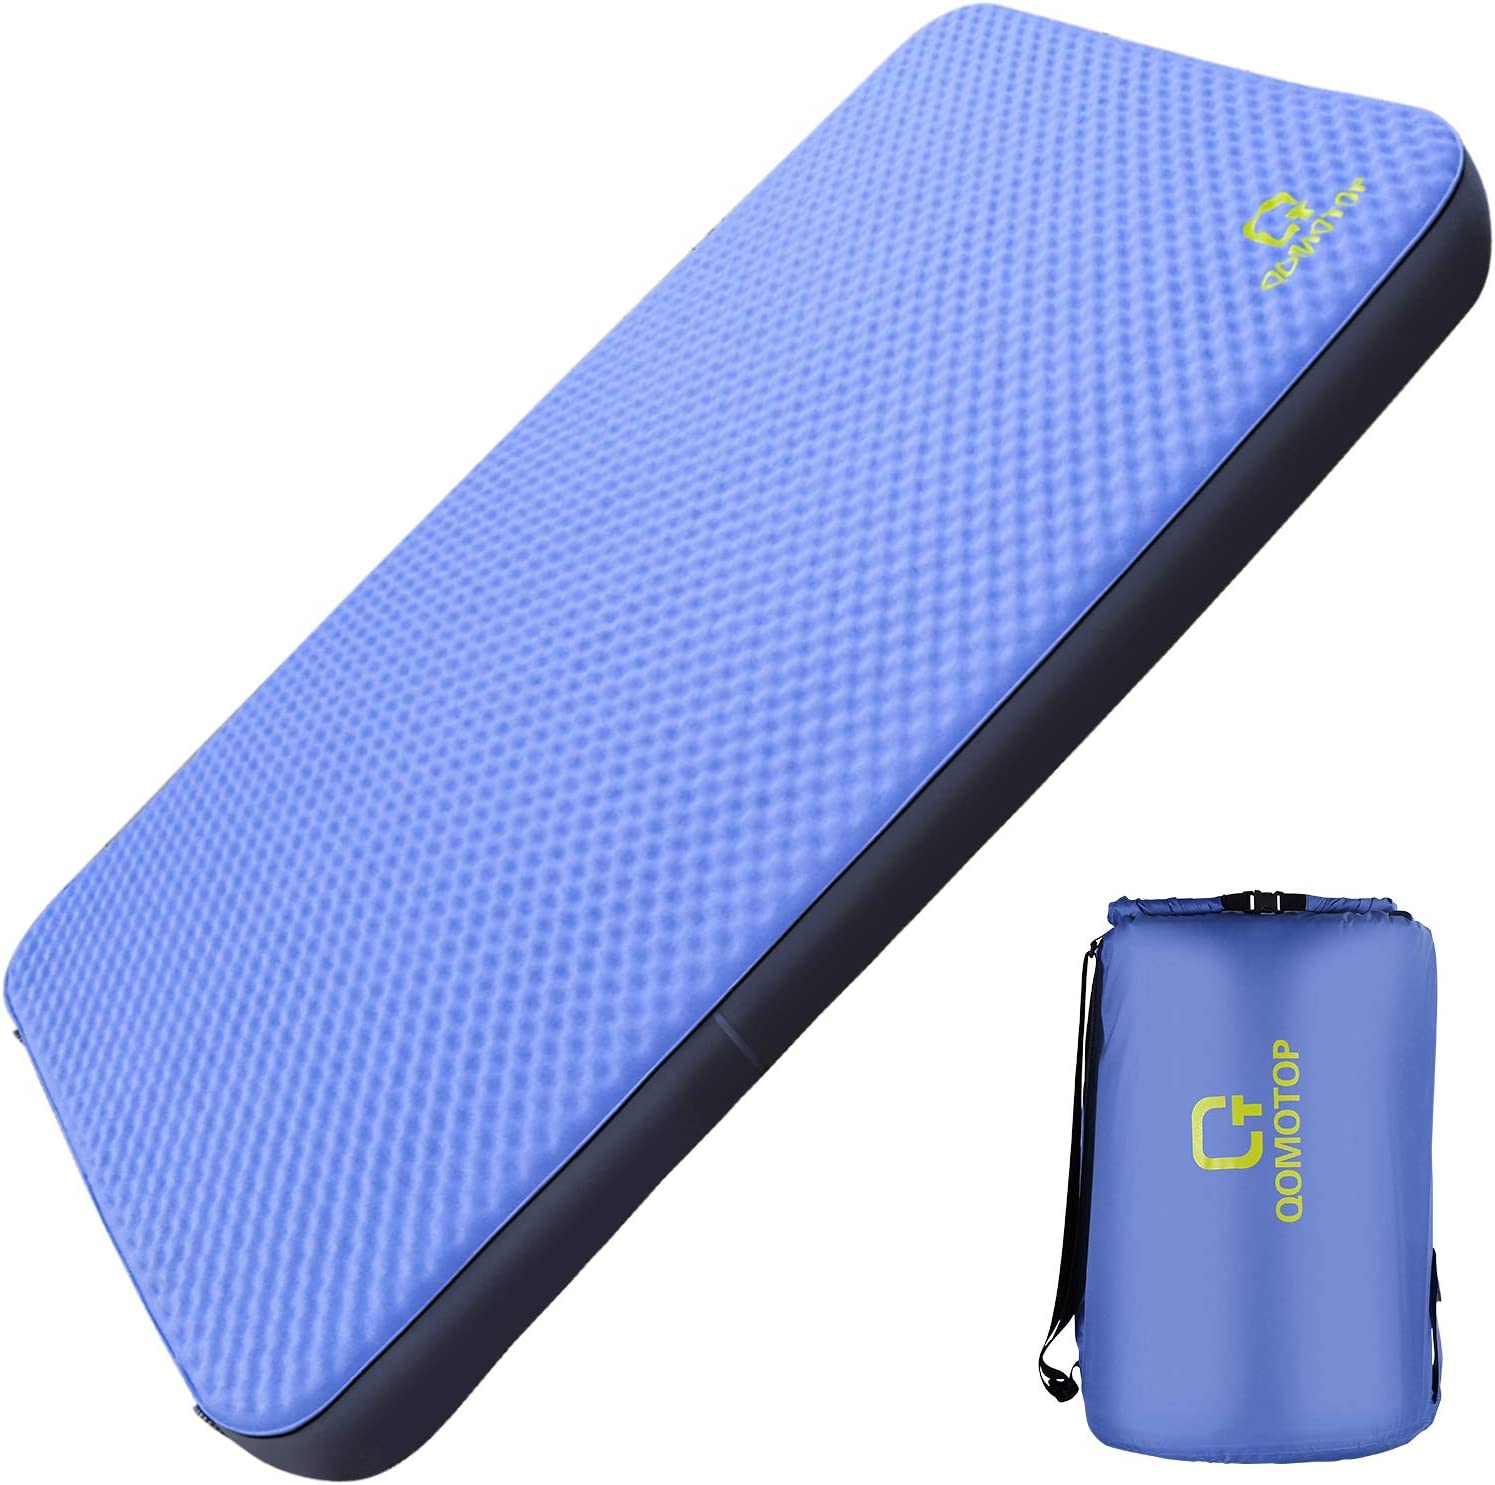 QOMOTOP Self-Inflating Camping Air Mattress